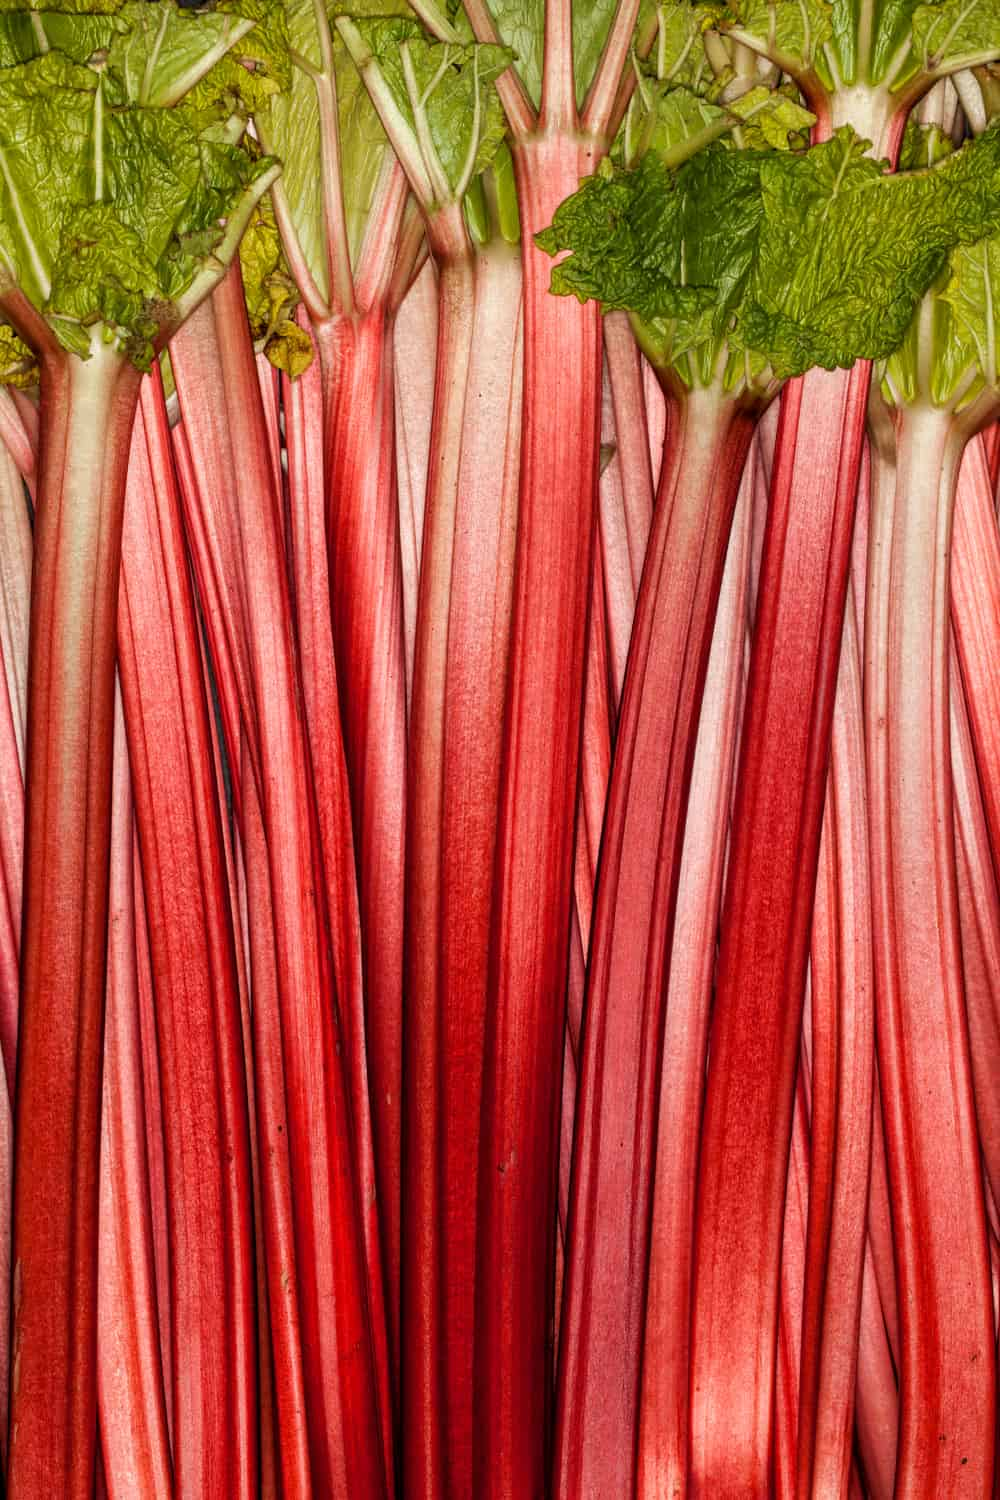 Does Rhubarb Go Bad How long does It Last